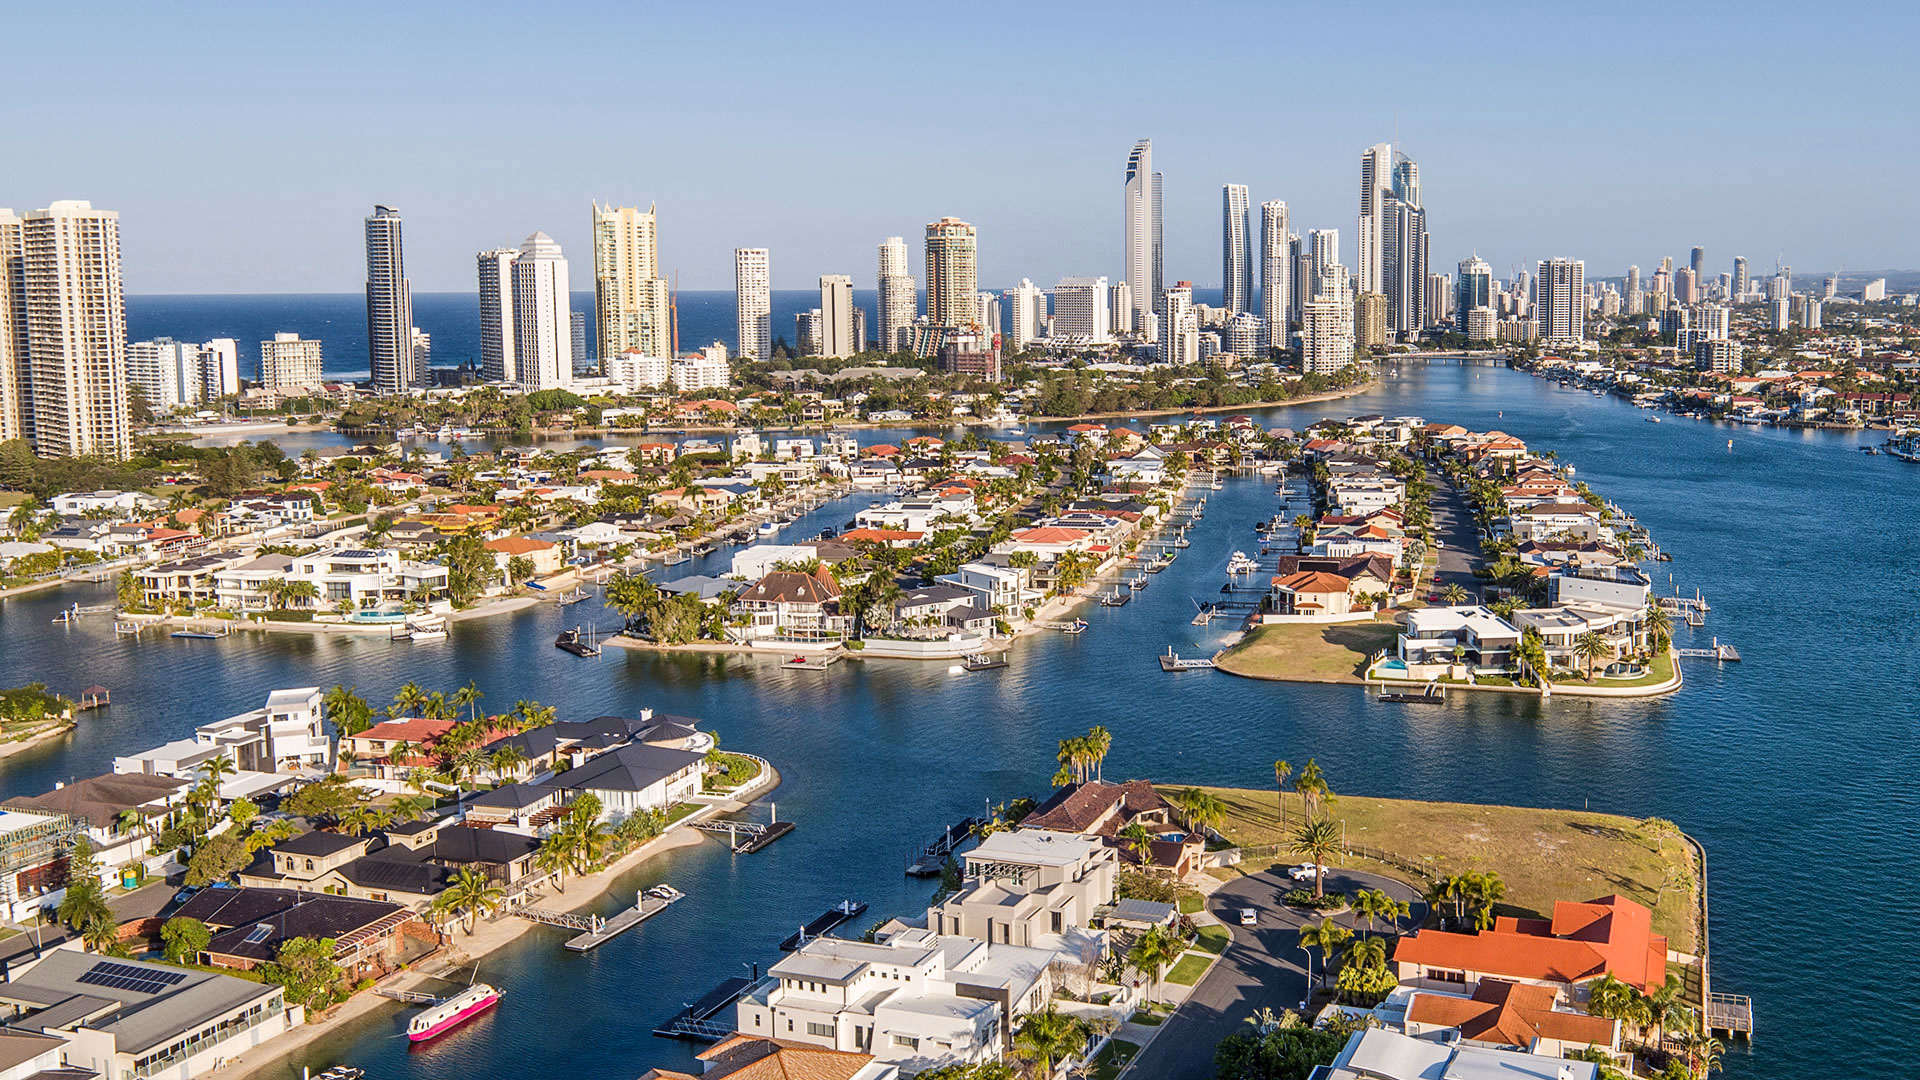 Aerial drone photography on the Gold Coast.